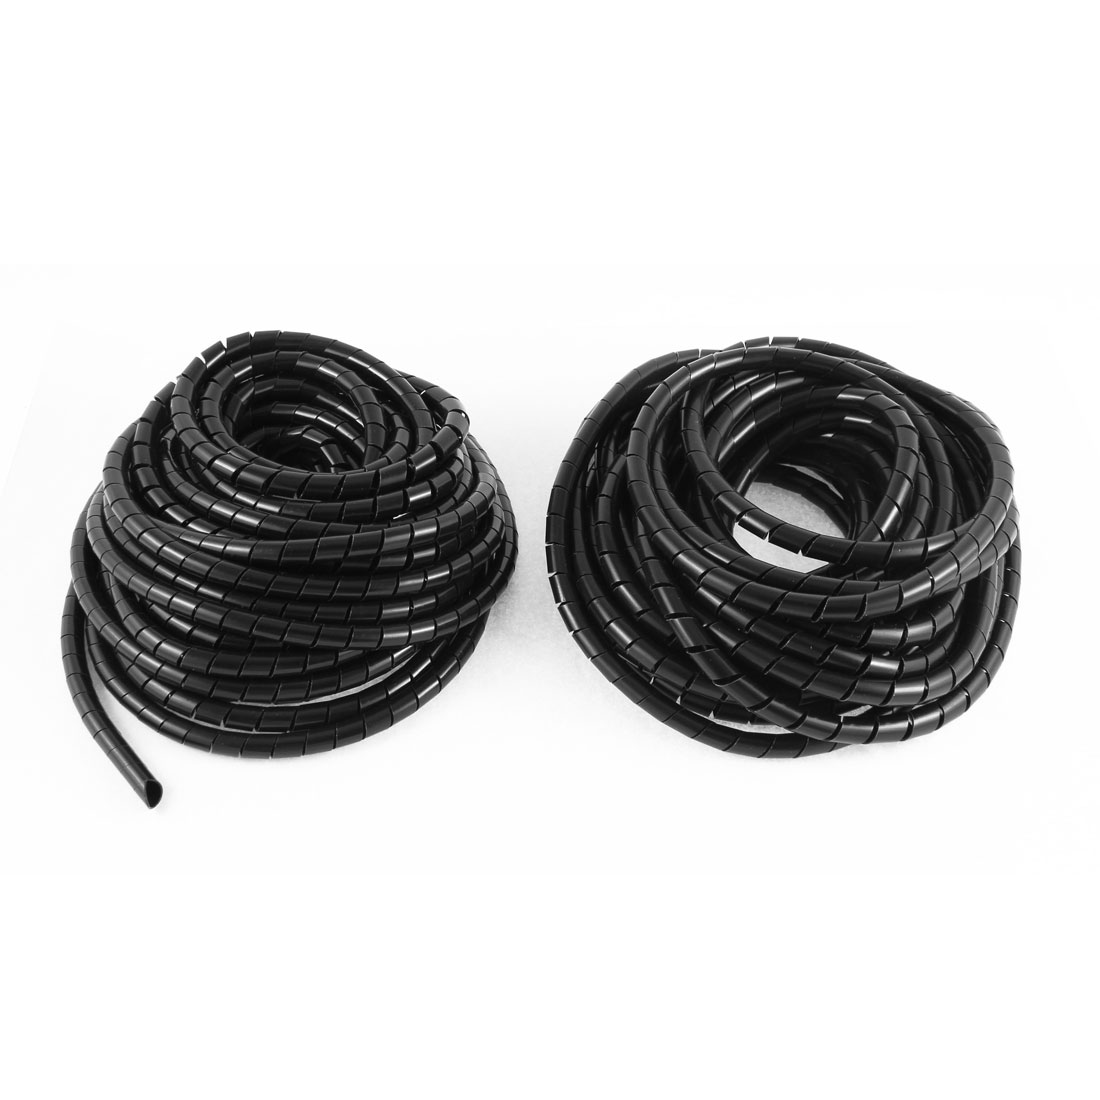 3pcs 33ft 10Meter 8mm OD Black Flexible Wire Spiral Wrap Sleeving Band Tube Cable Manager Protector